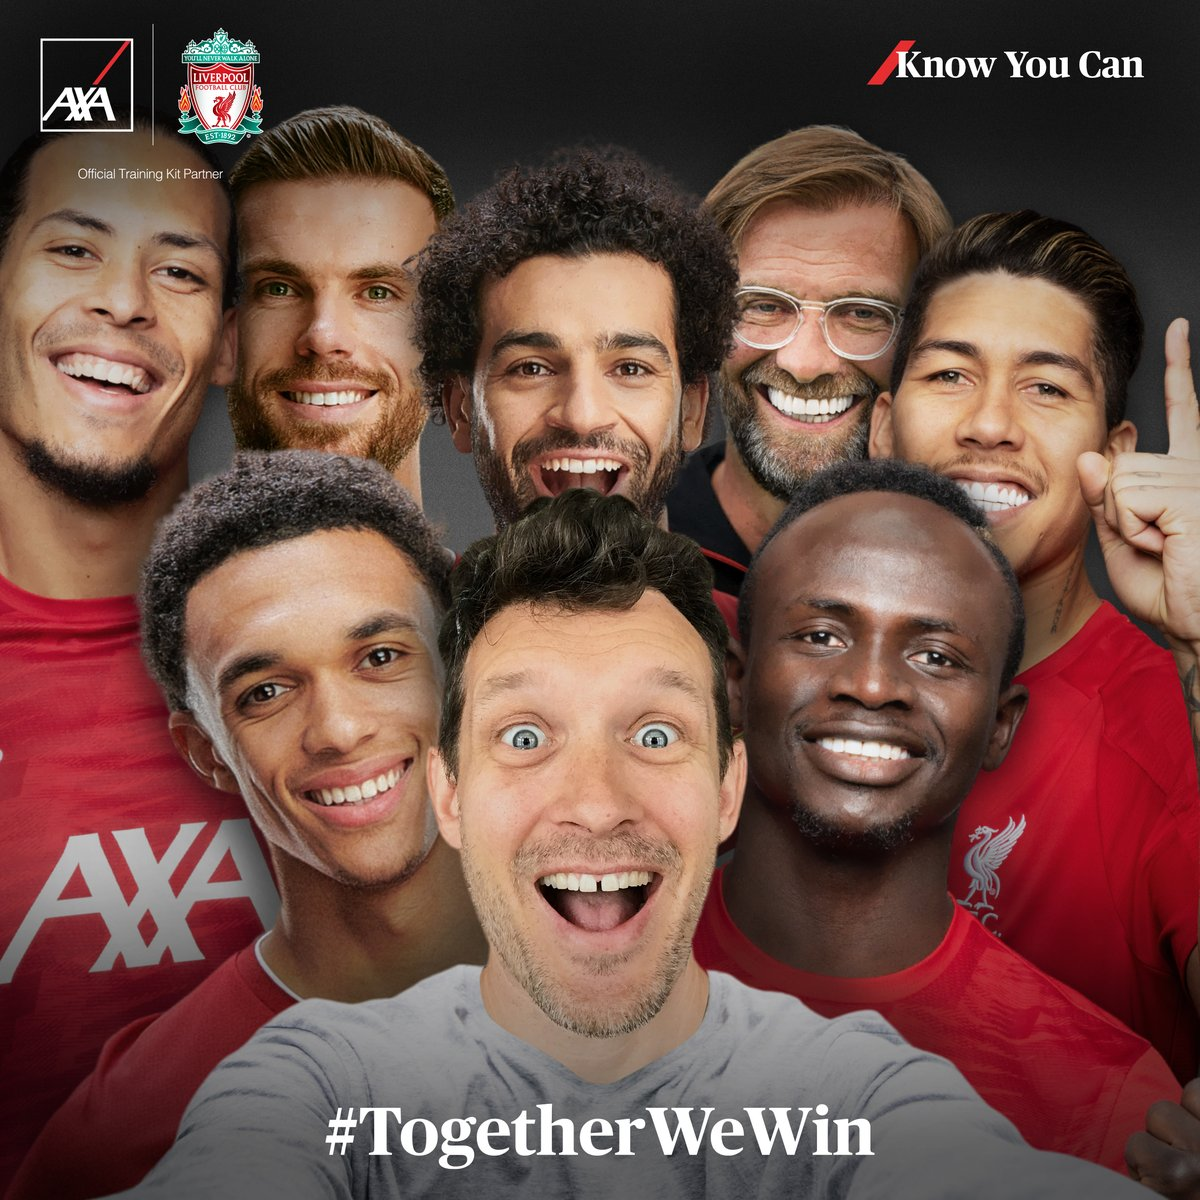 As the Official Training Kit Partner of @LiverpoolFC we are giving fans across the world the chance to take a selfie with the Champions! Find out more at https://t.co/dW0eks7rG8 and then share your selfie using #TogetherWeWin #KnowYouCan #AXA #OfficalTrainingKitPartner #LFC https://t.co/2PtbnMc5W6